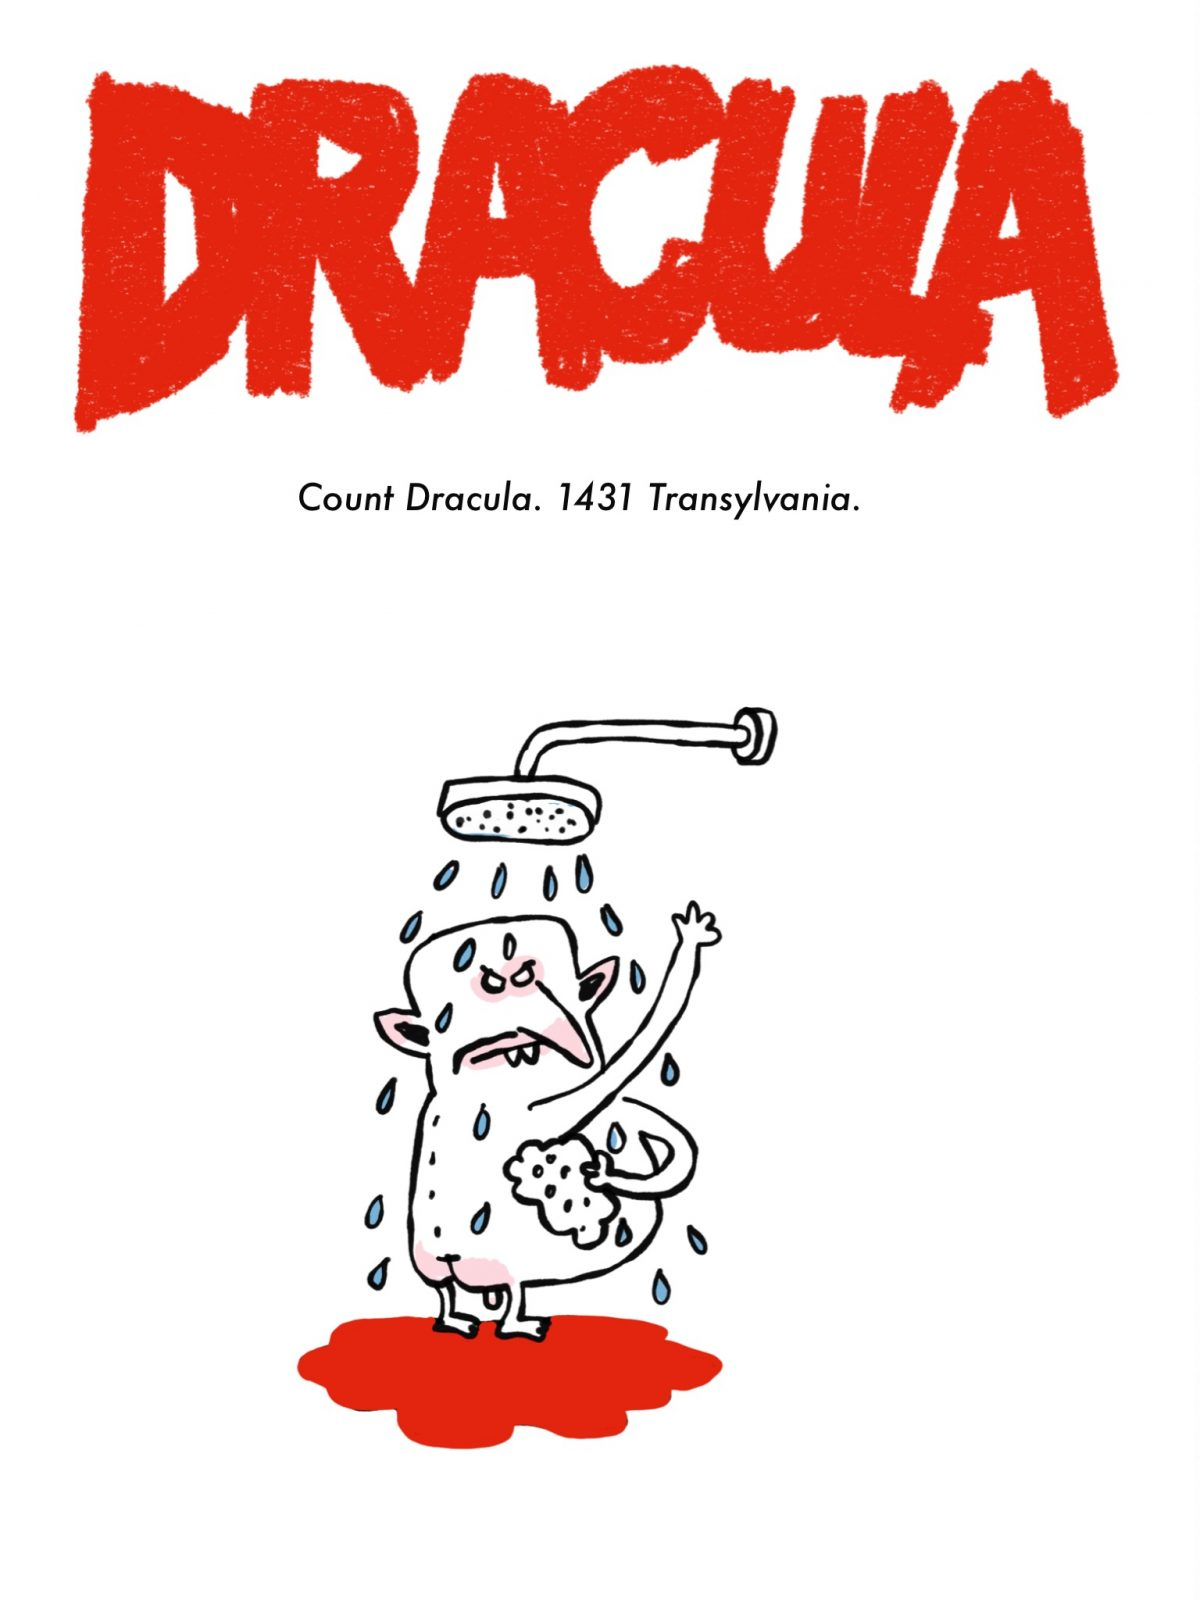 Count Dracula_Transylvania_blood_comics_story_english Queen